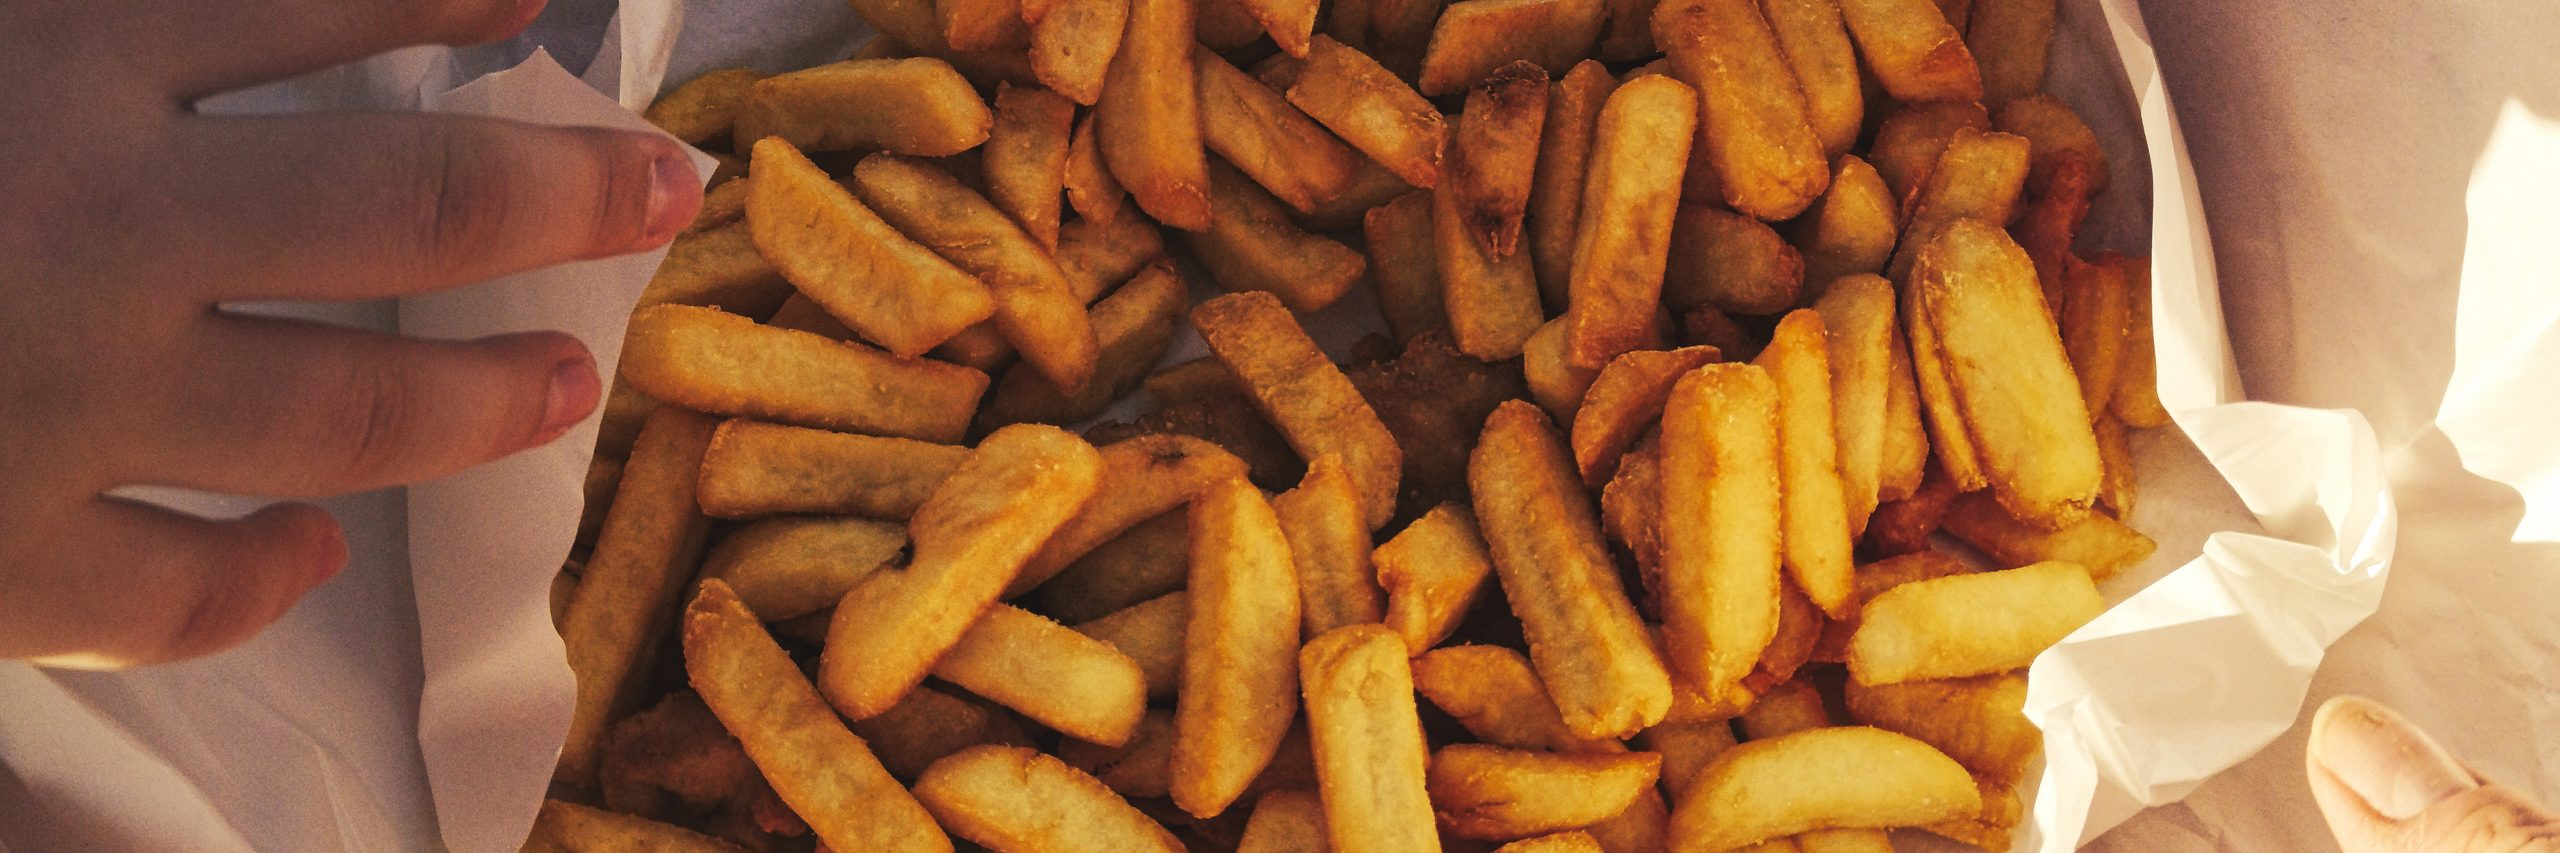 spuds potatos chips